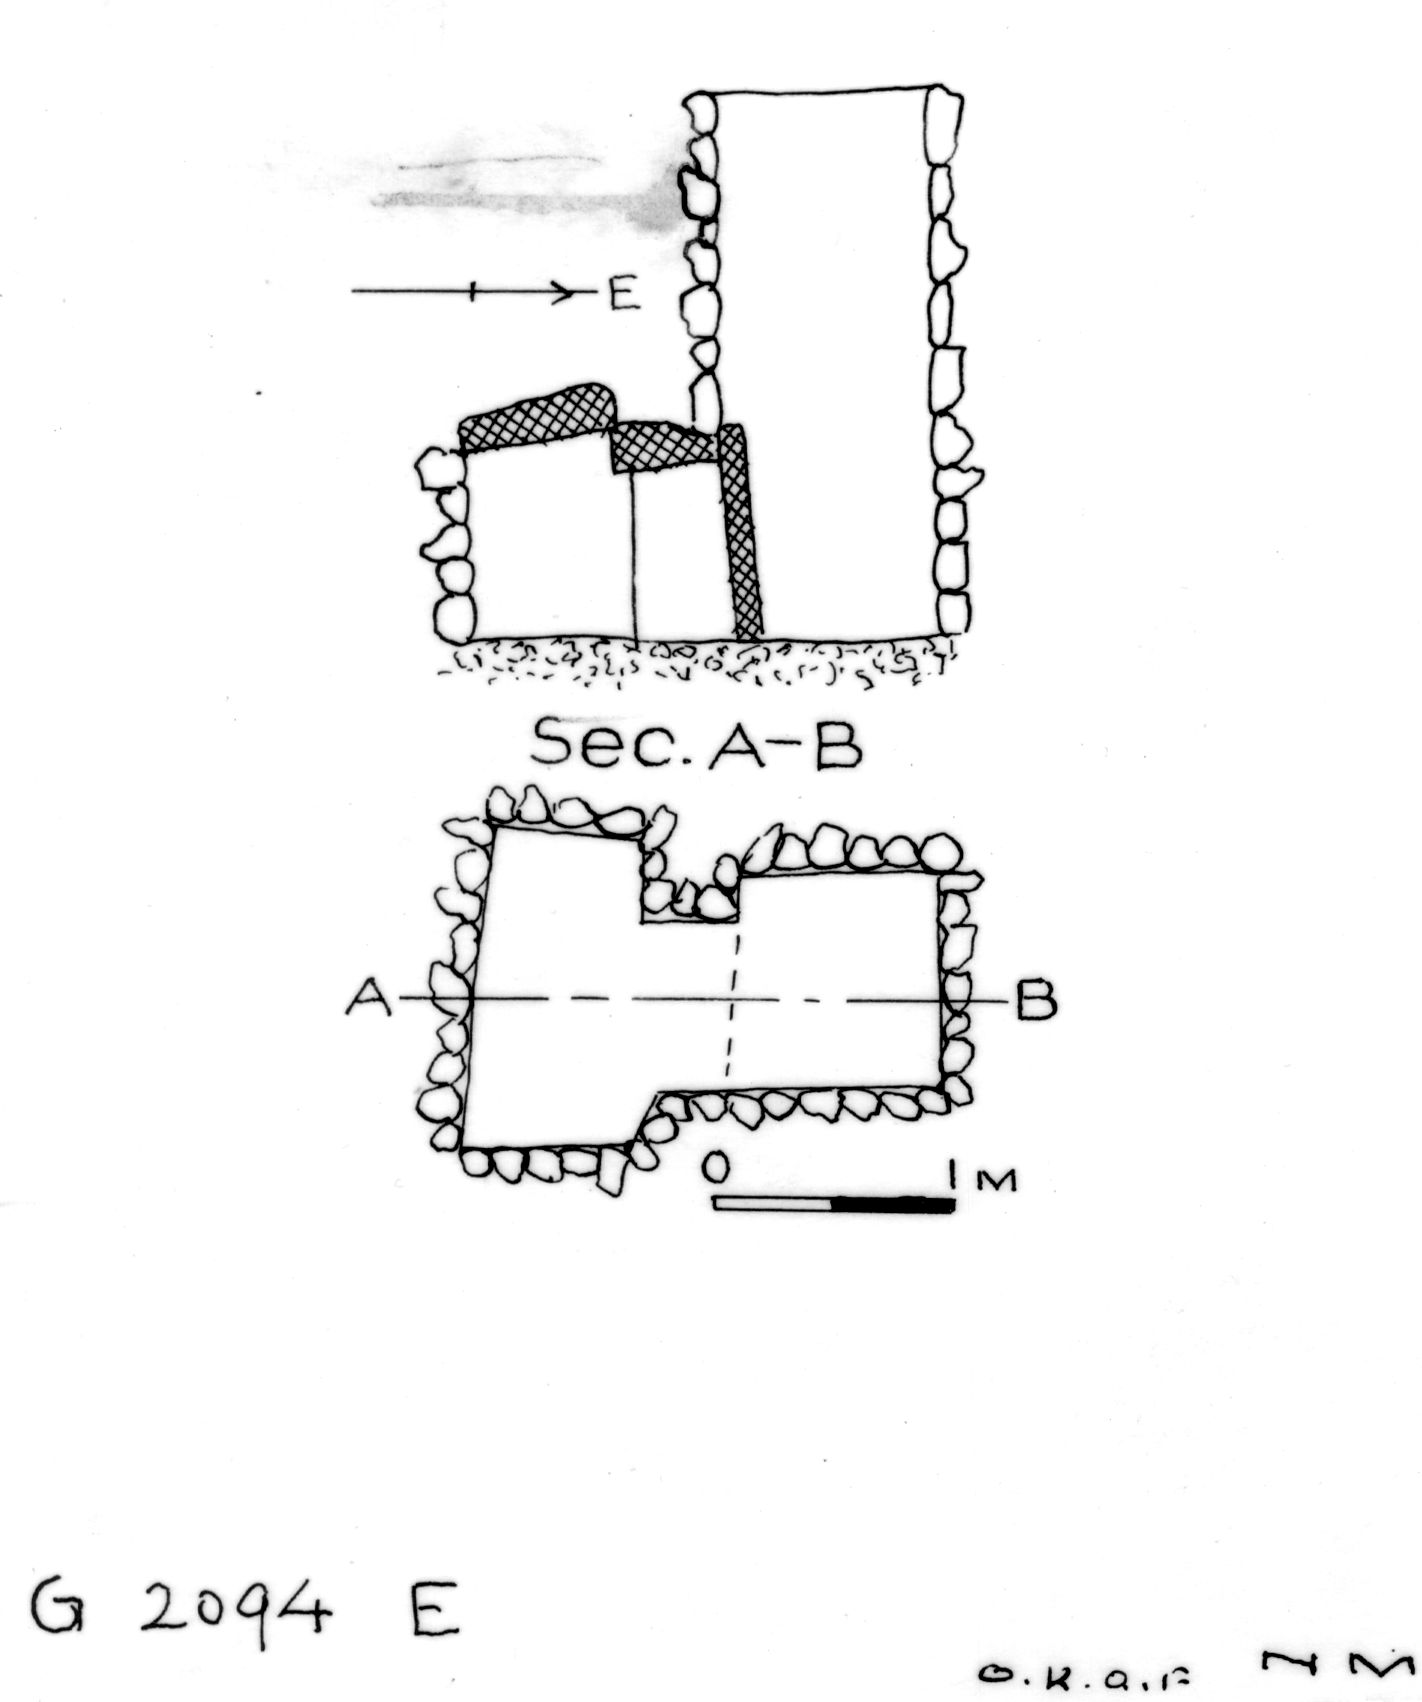 Maps and plans: G 2094, Shaft E